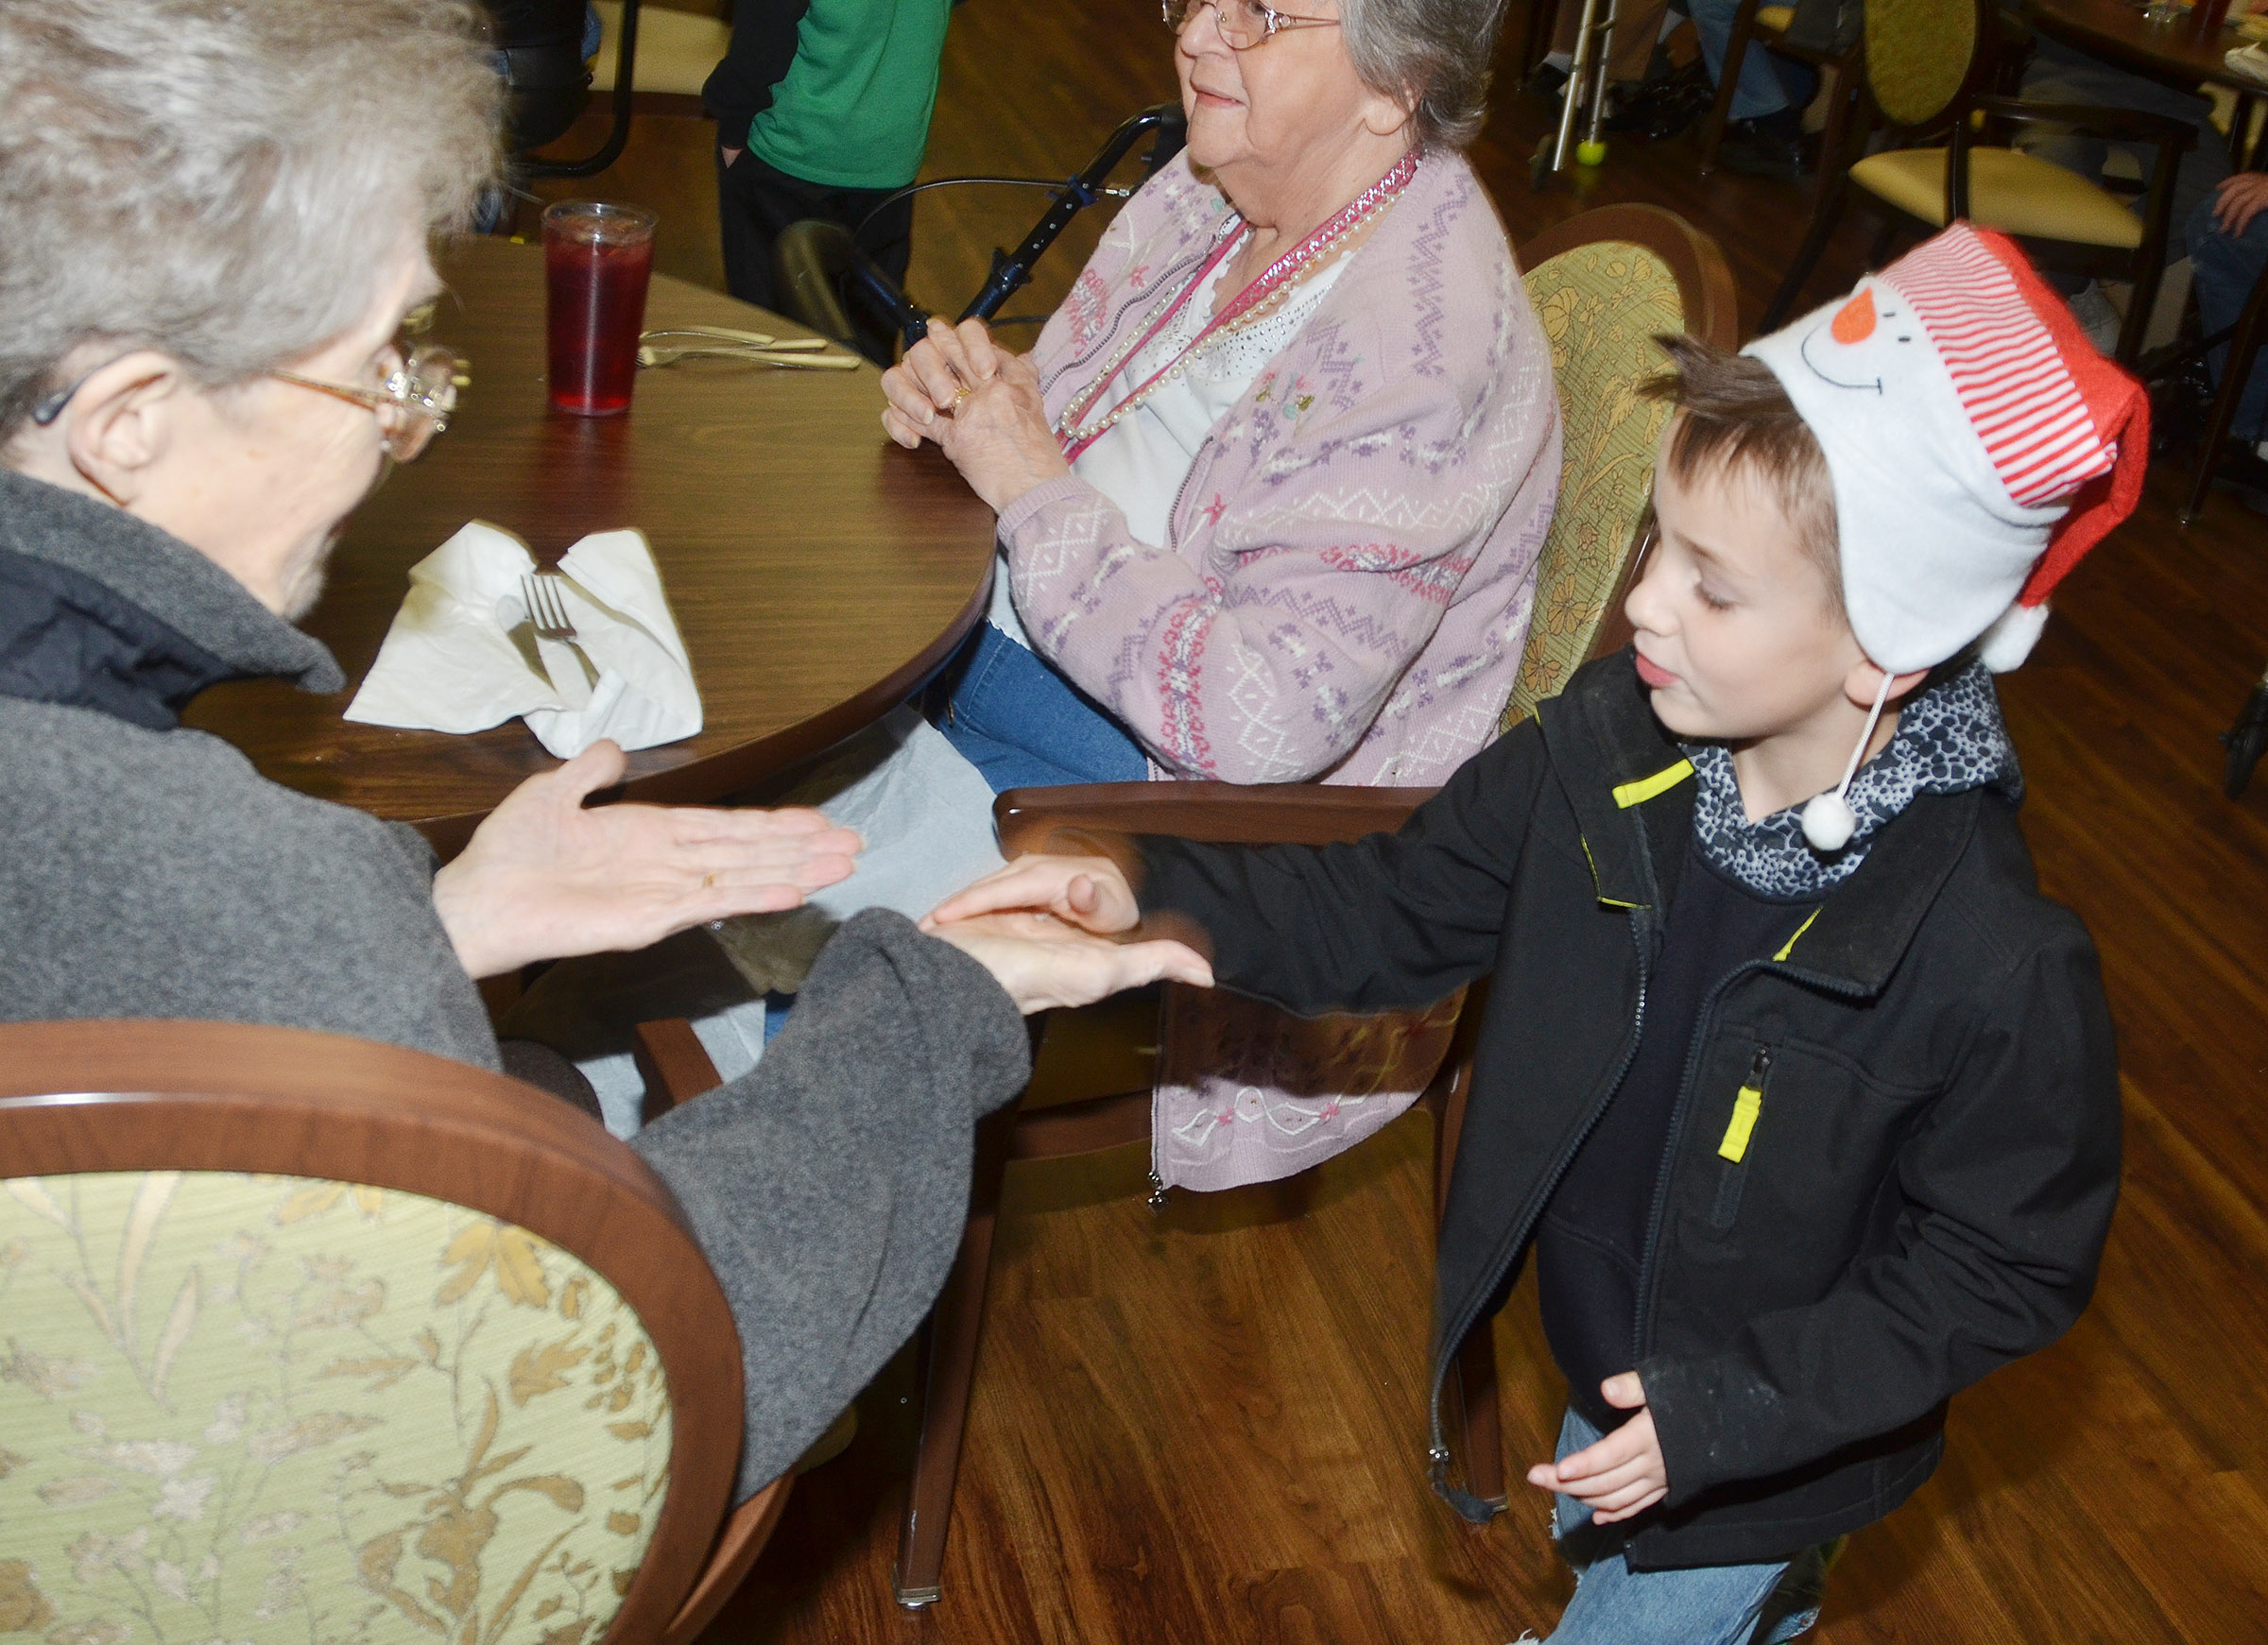 Campbellsville Elementary School kindergartener Cash Davis greets Bluegrass Way residents.